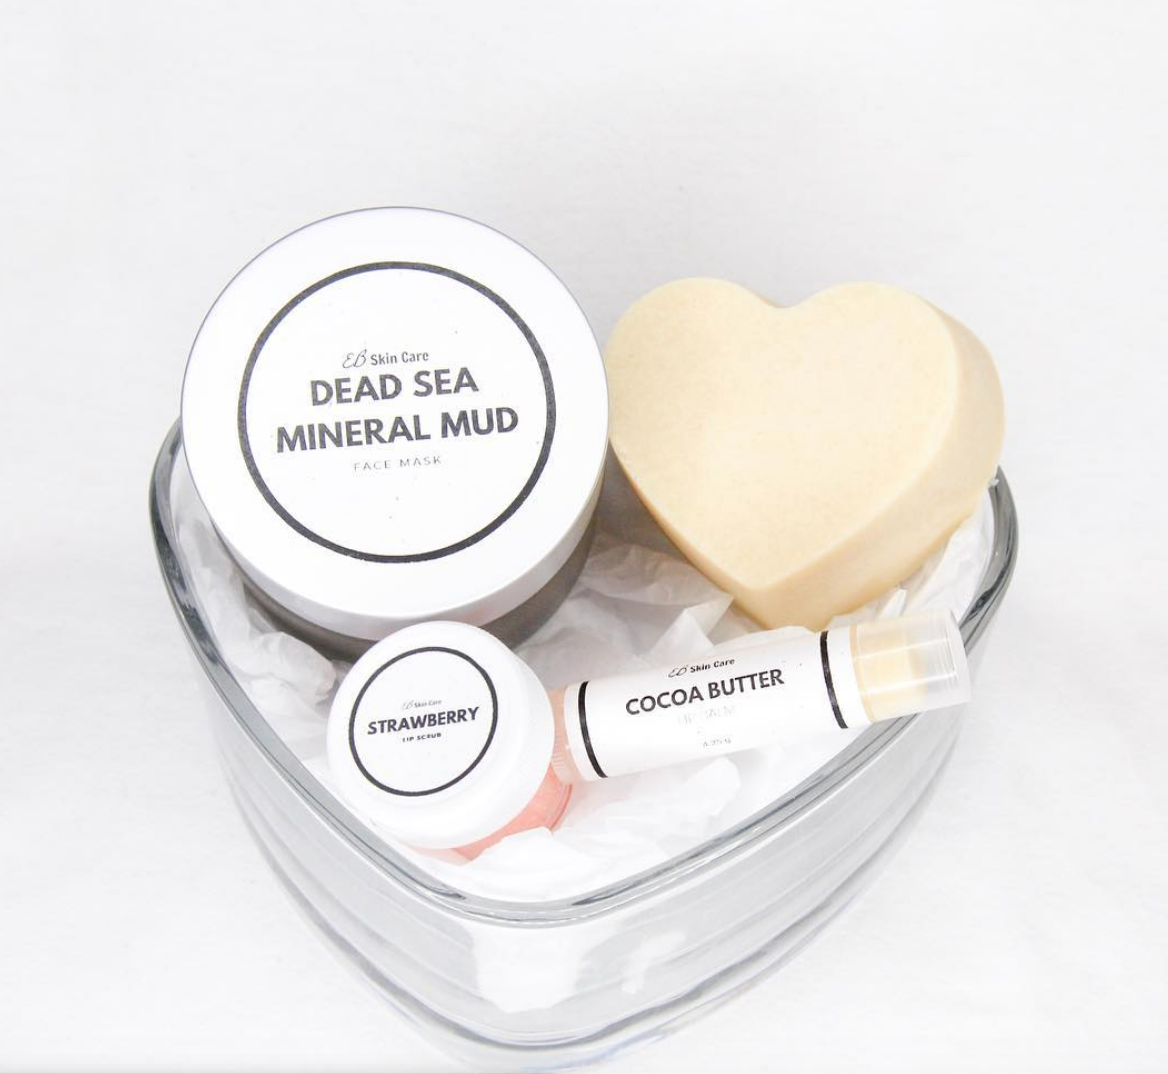 Sample of EB Skincare products, such as a face mask, lip balm, lip scrum and artisan soap.